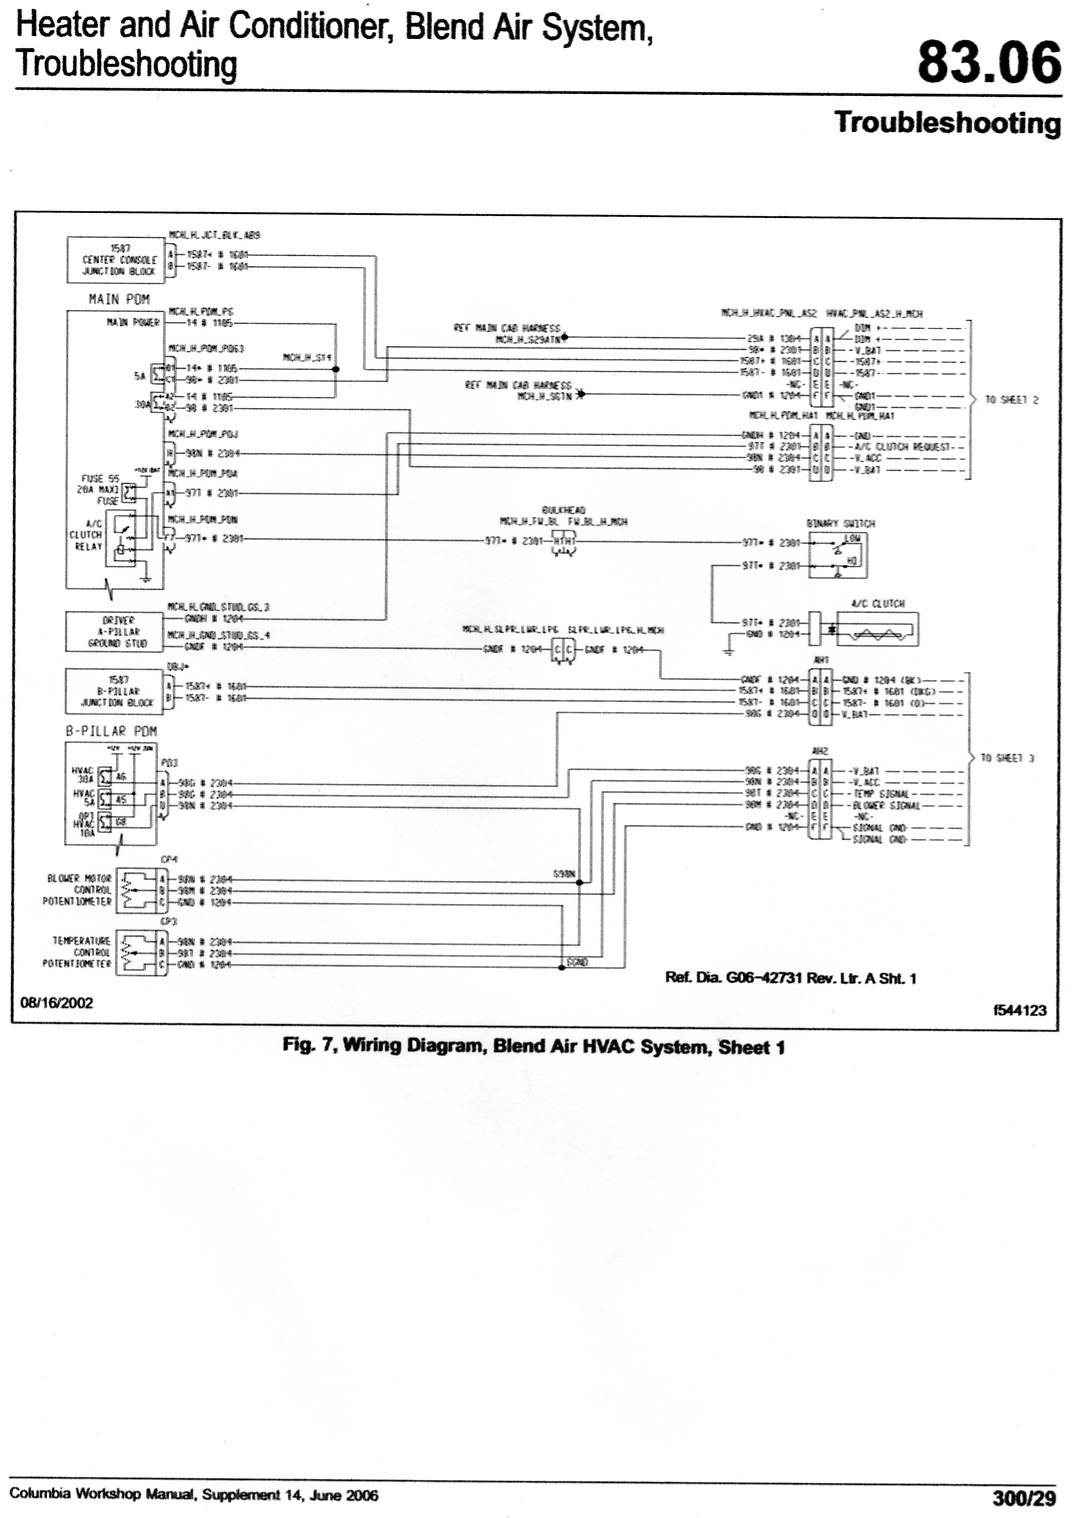 2006 freightliner columbia dash blower quit tried testing changing it works on hz signal what all have you checked or replaced also are you getting any faults on your dash display here is wiring diagram for front control